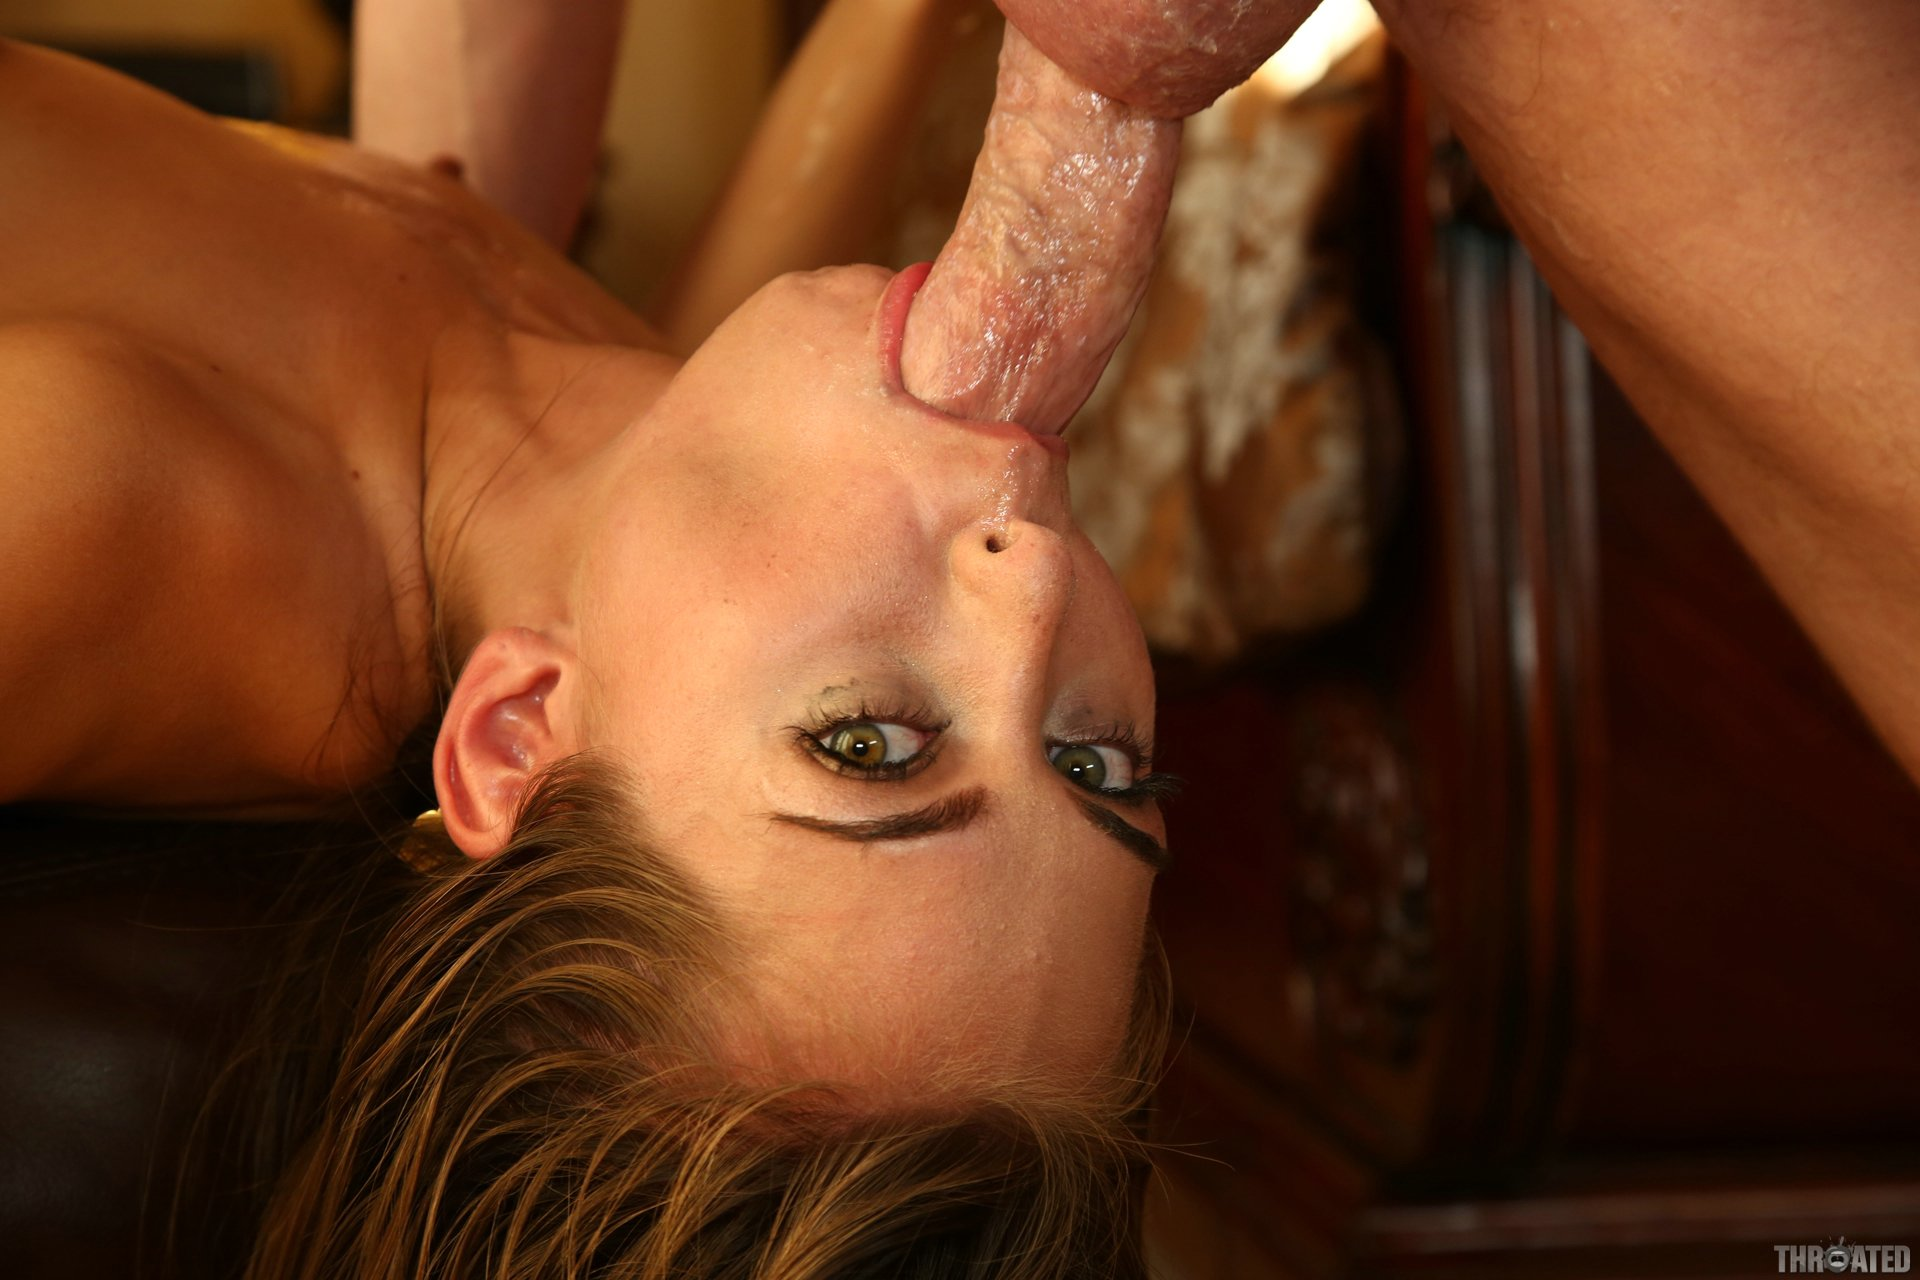 My Neighbor Gives Me A Non Stop Throatjob And Gets A Throbbing Oral Creampie